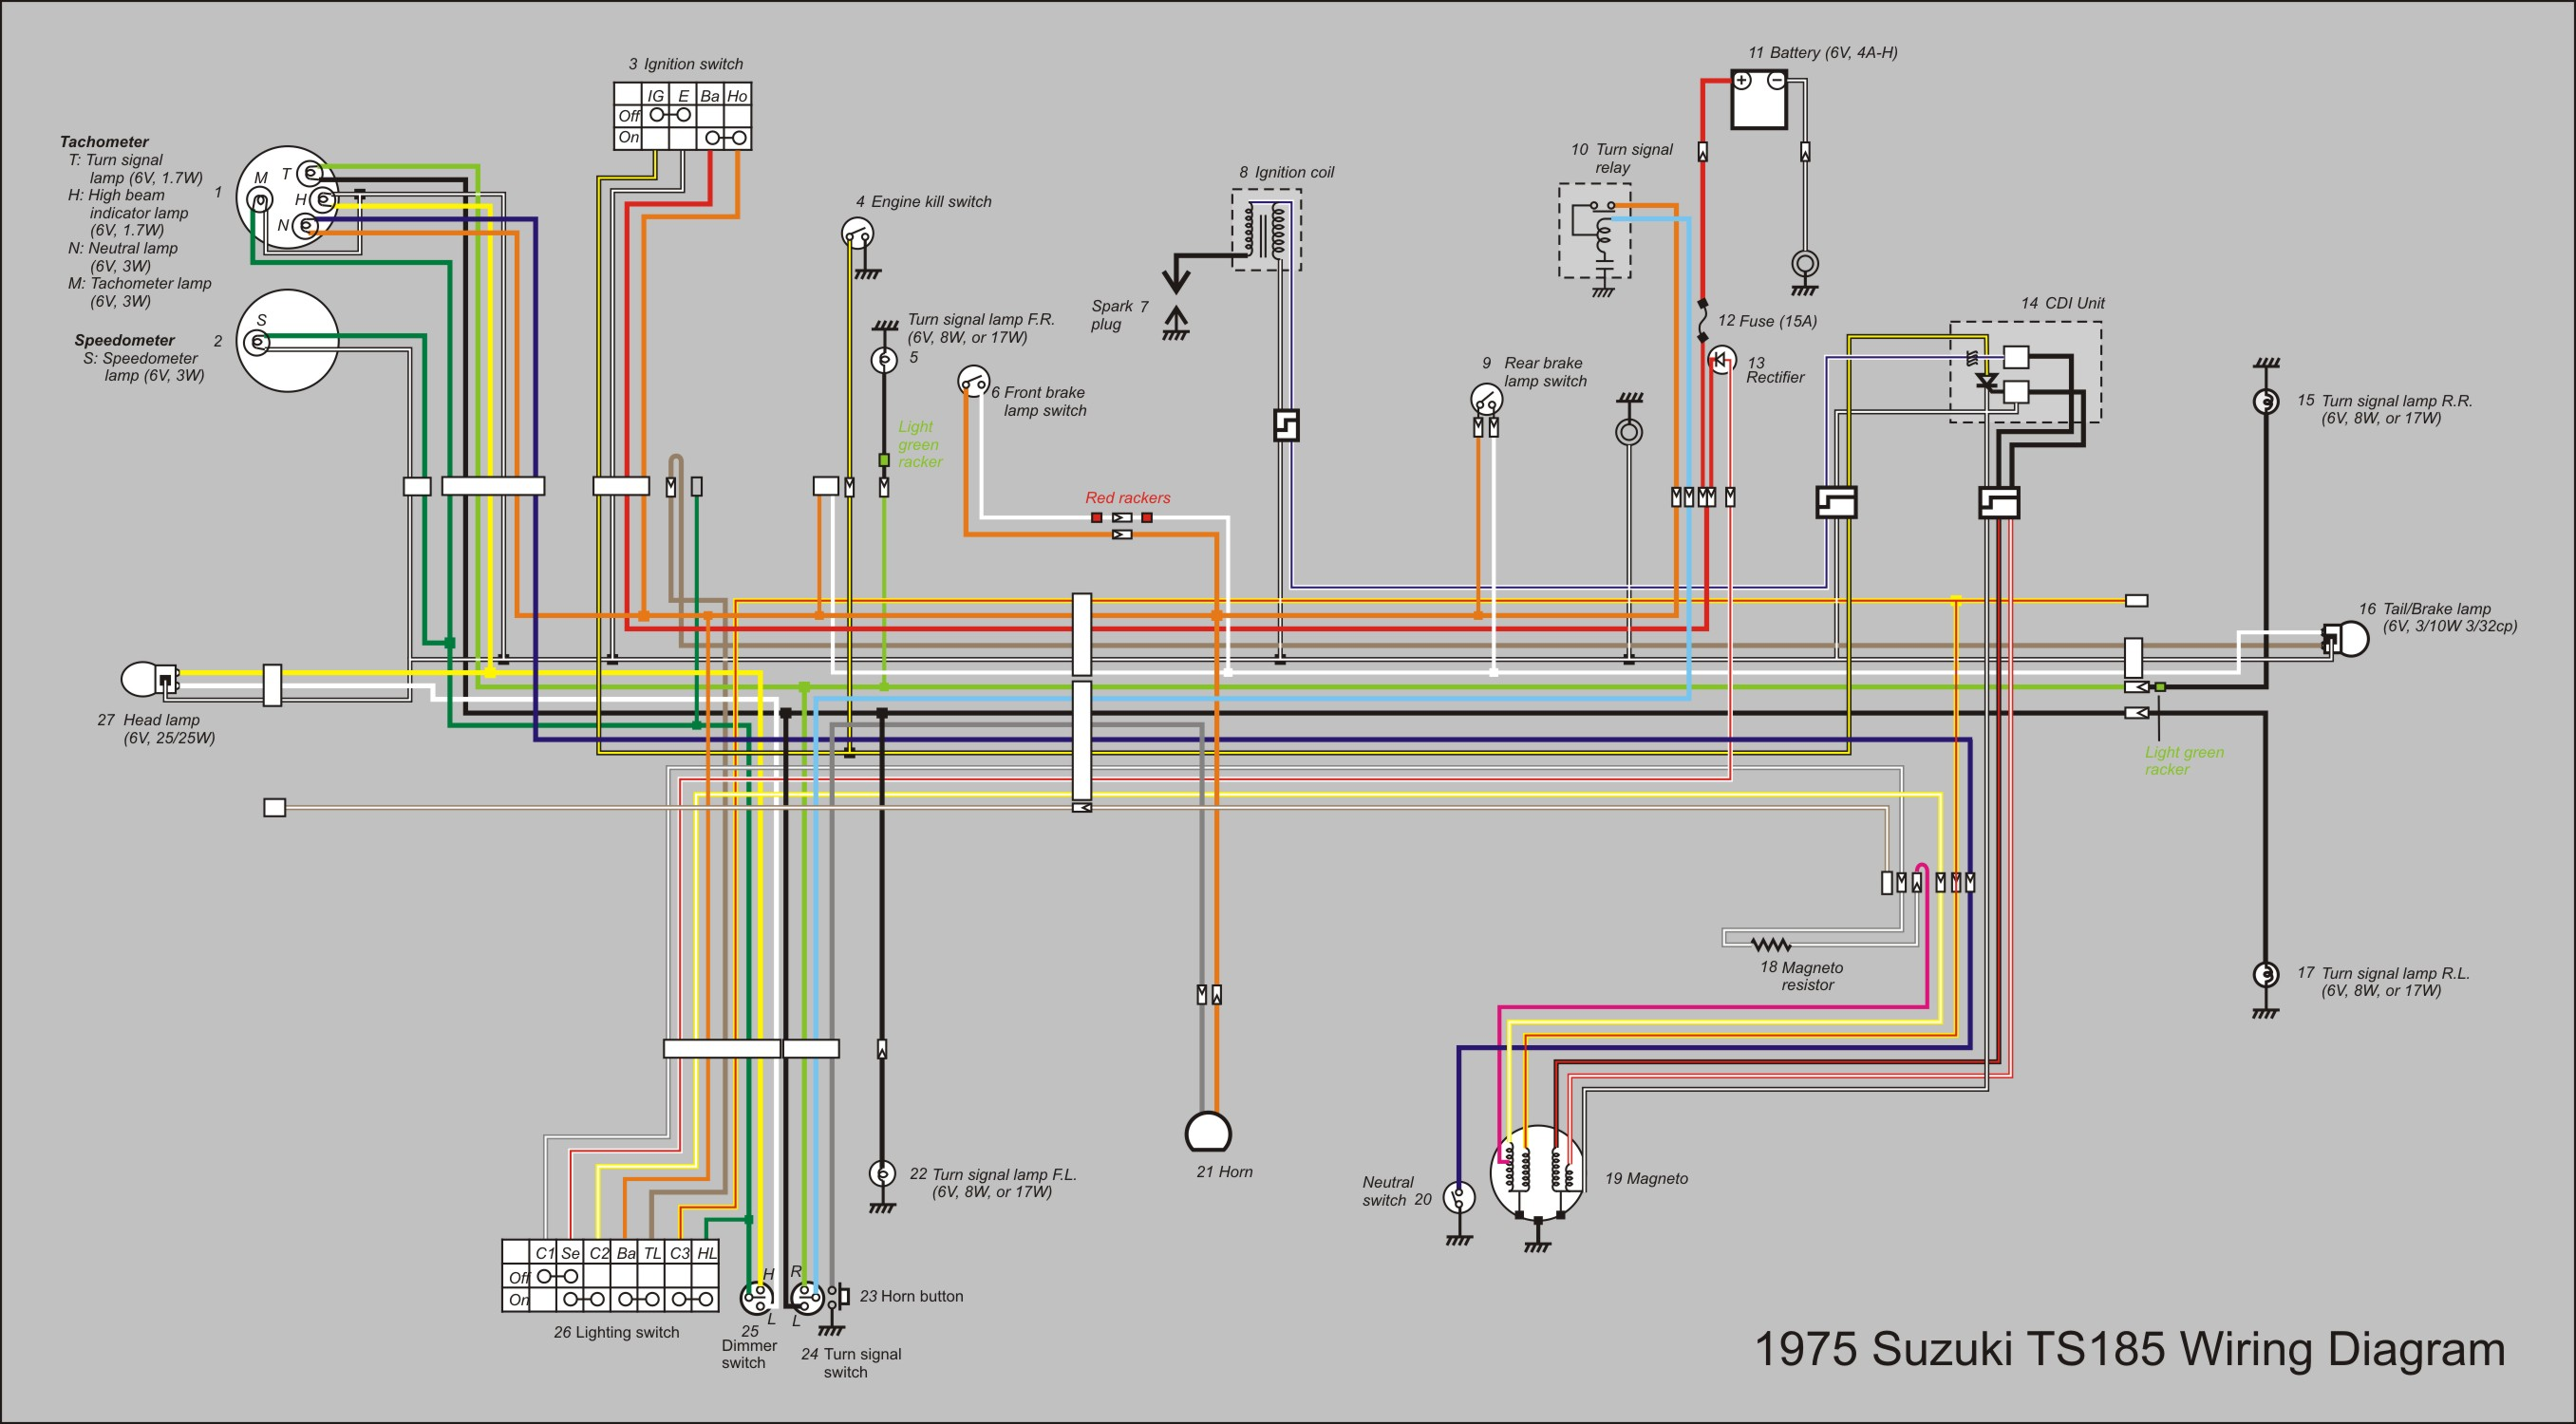 FileTS185 Wiring Diagram newjpg Wikimedia Commons – Diagram Wiring